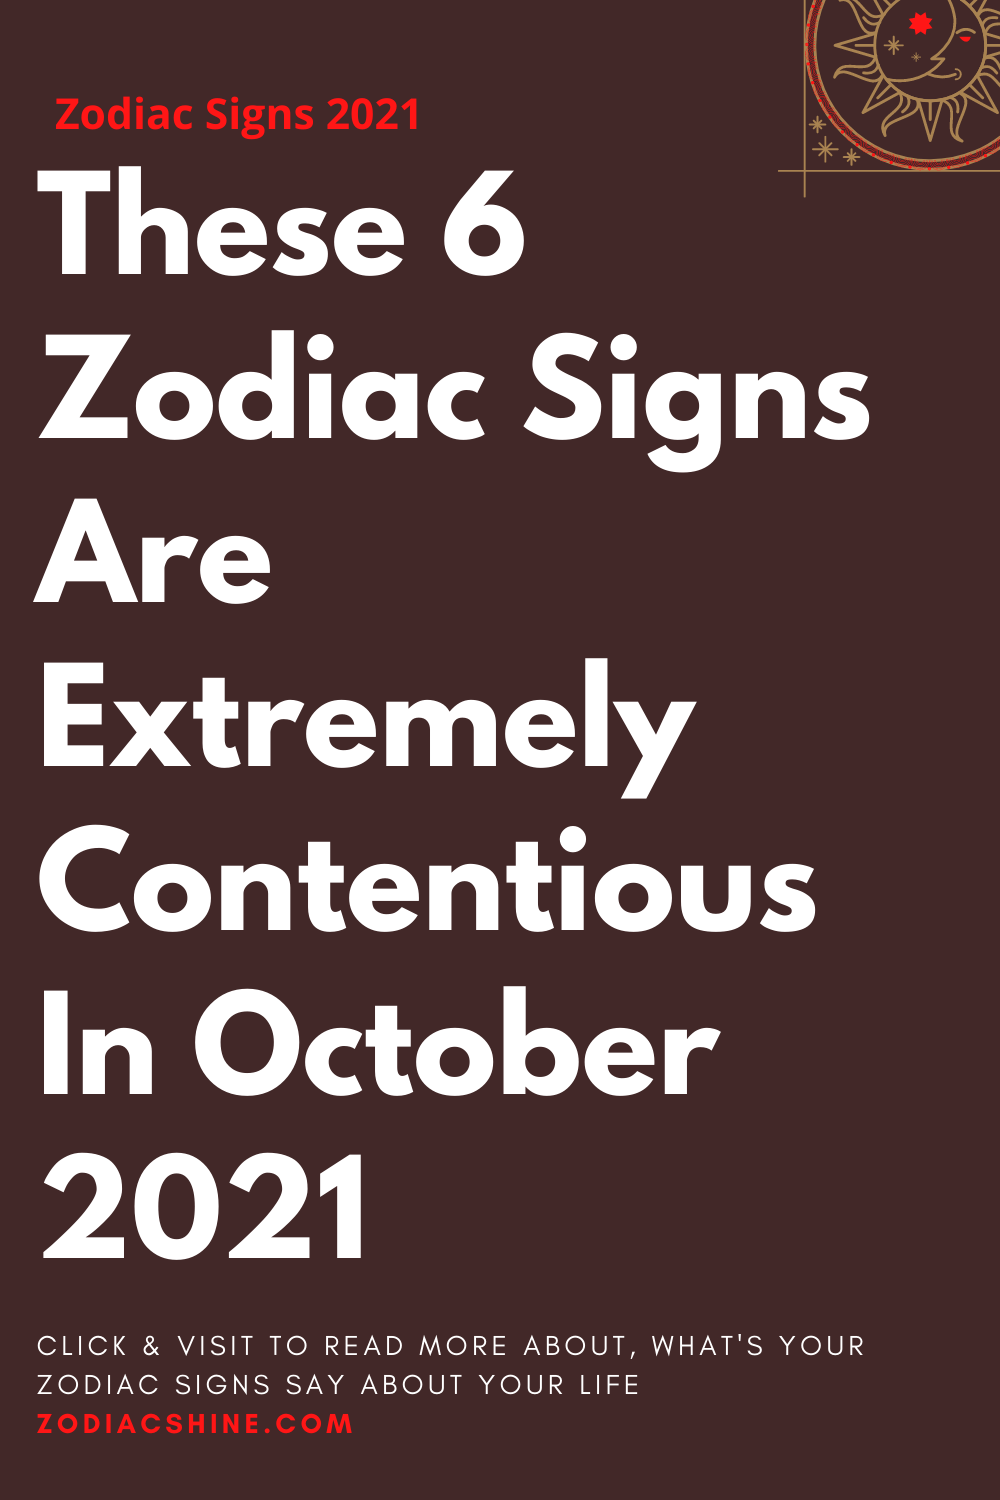 These 6 Zodiac Signs Are Extremely Contentious In October 2021